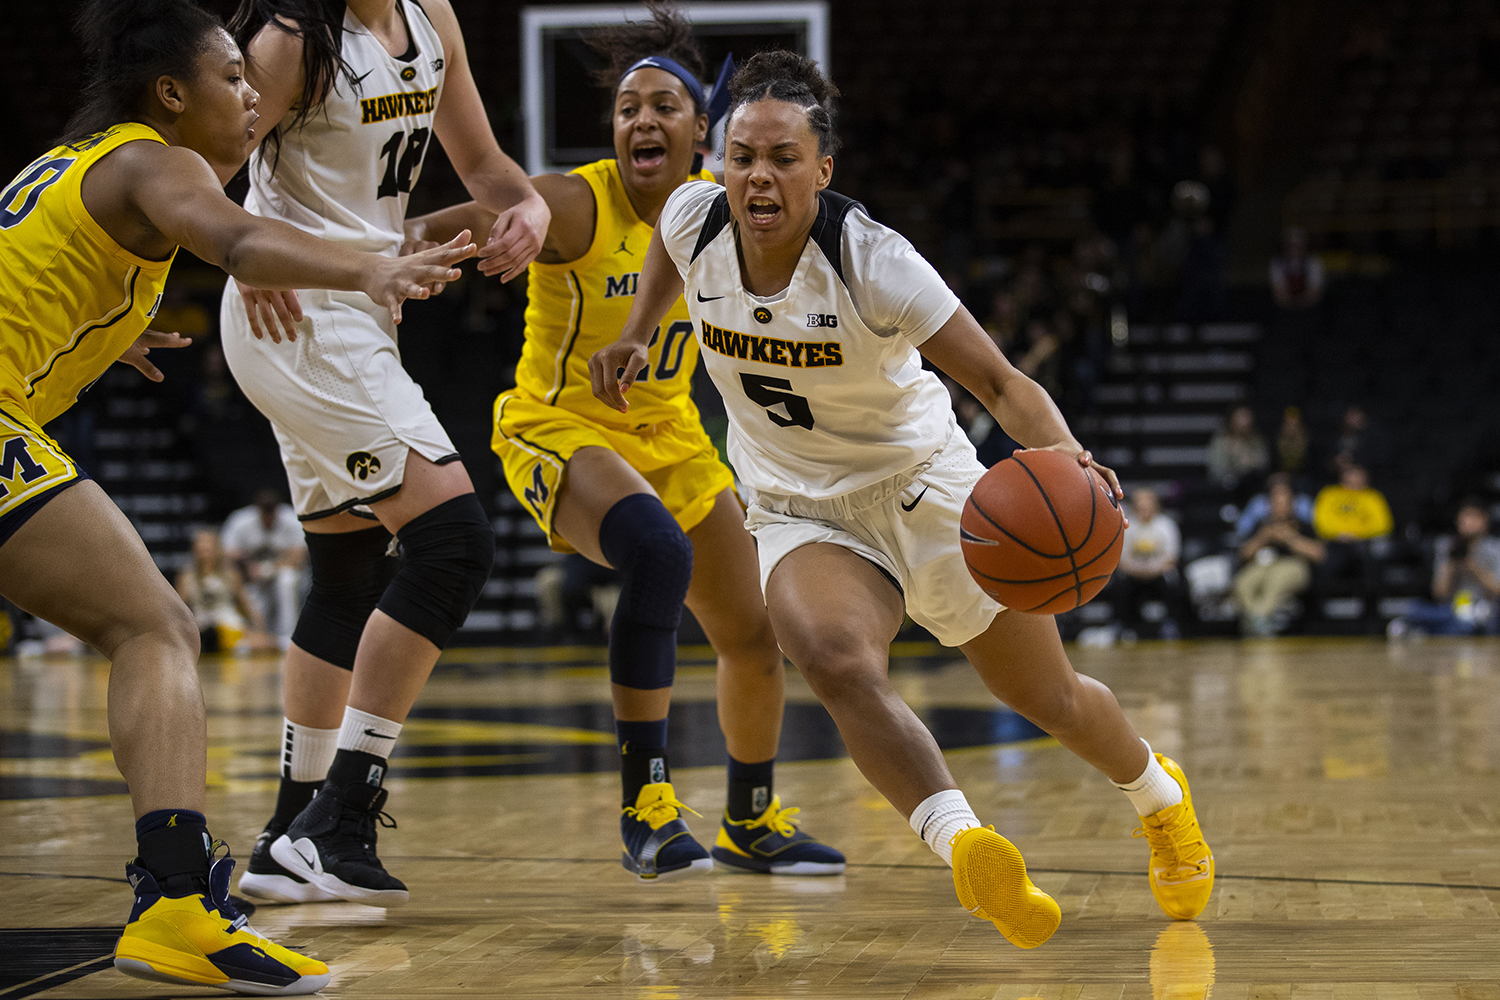 Iowa+guard+Alexis+Sevillian+drives+to+the+hoop+during+the+Iowa%2FMichigan+women%27s+basketball+game+at+Carver-Hawkeye+Arena+on+Thursday%2C+January+17%2C+2019.+The+Hawkeyes+defeated+the+Wolverines%2C+75-61.+